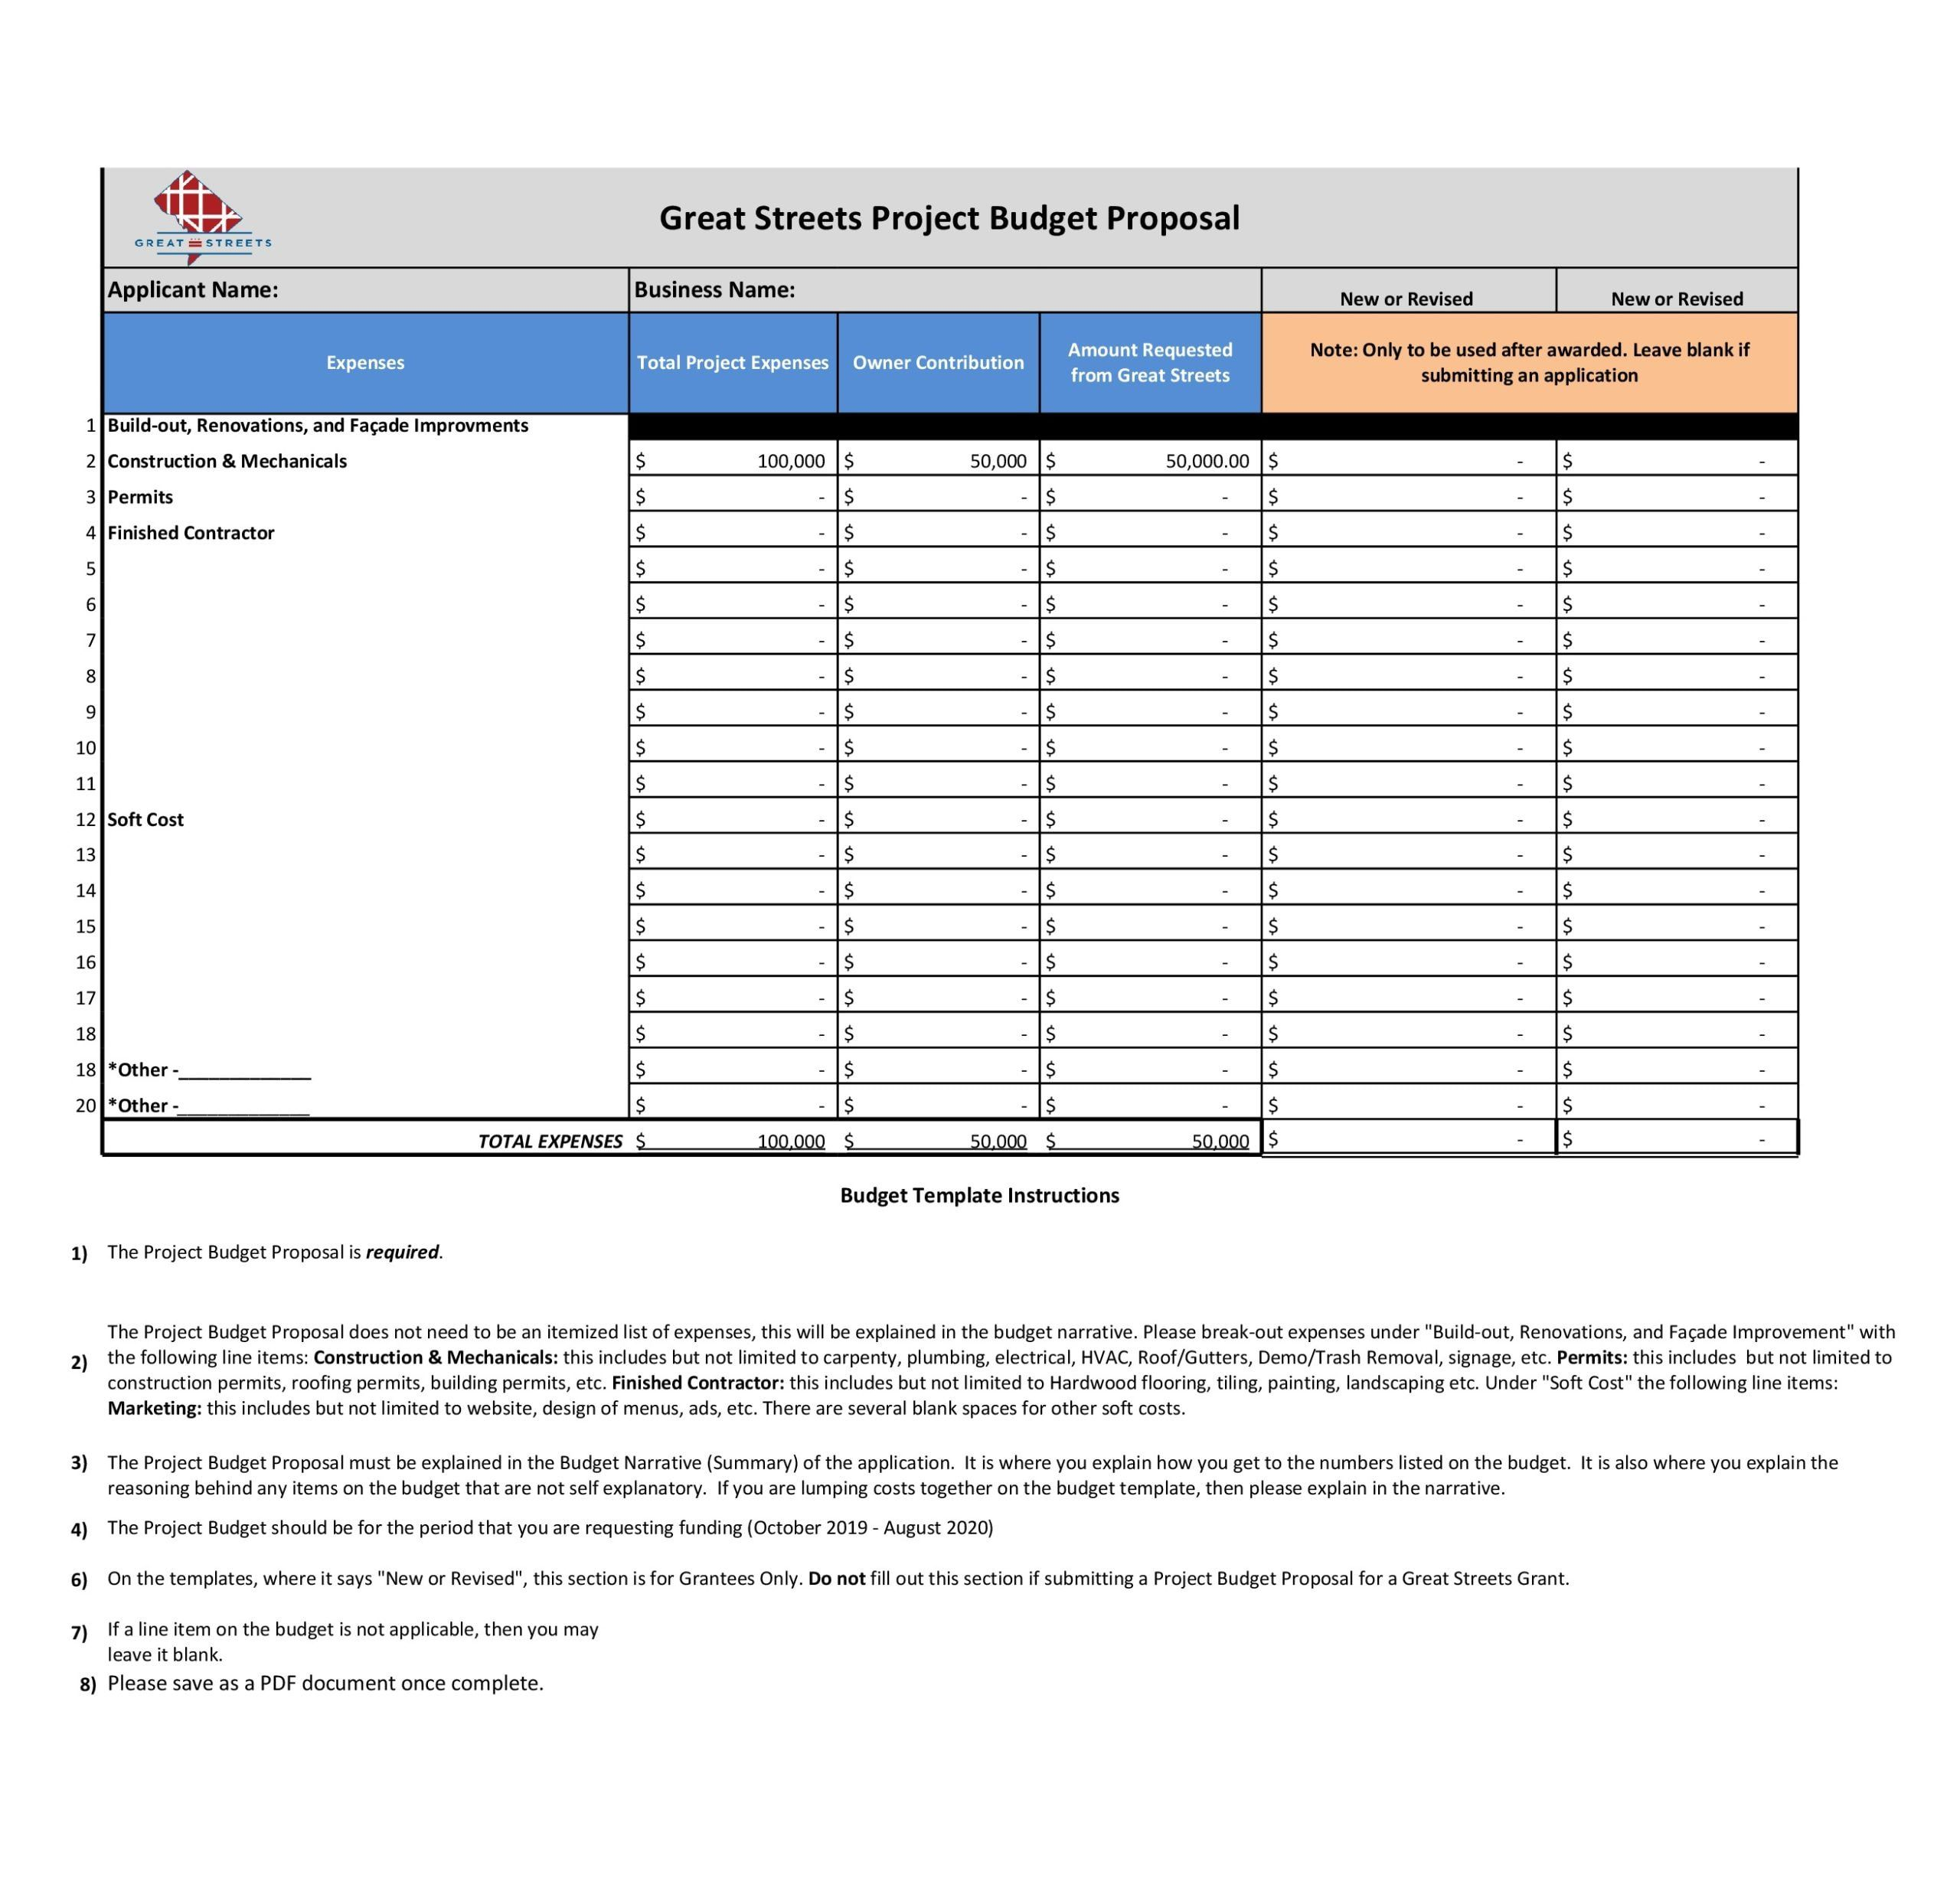 009 Fascinating Line Item Budget Spreadsheet High Definition  Template Word FreeFull